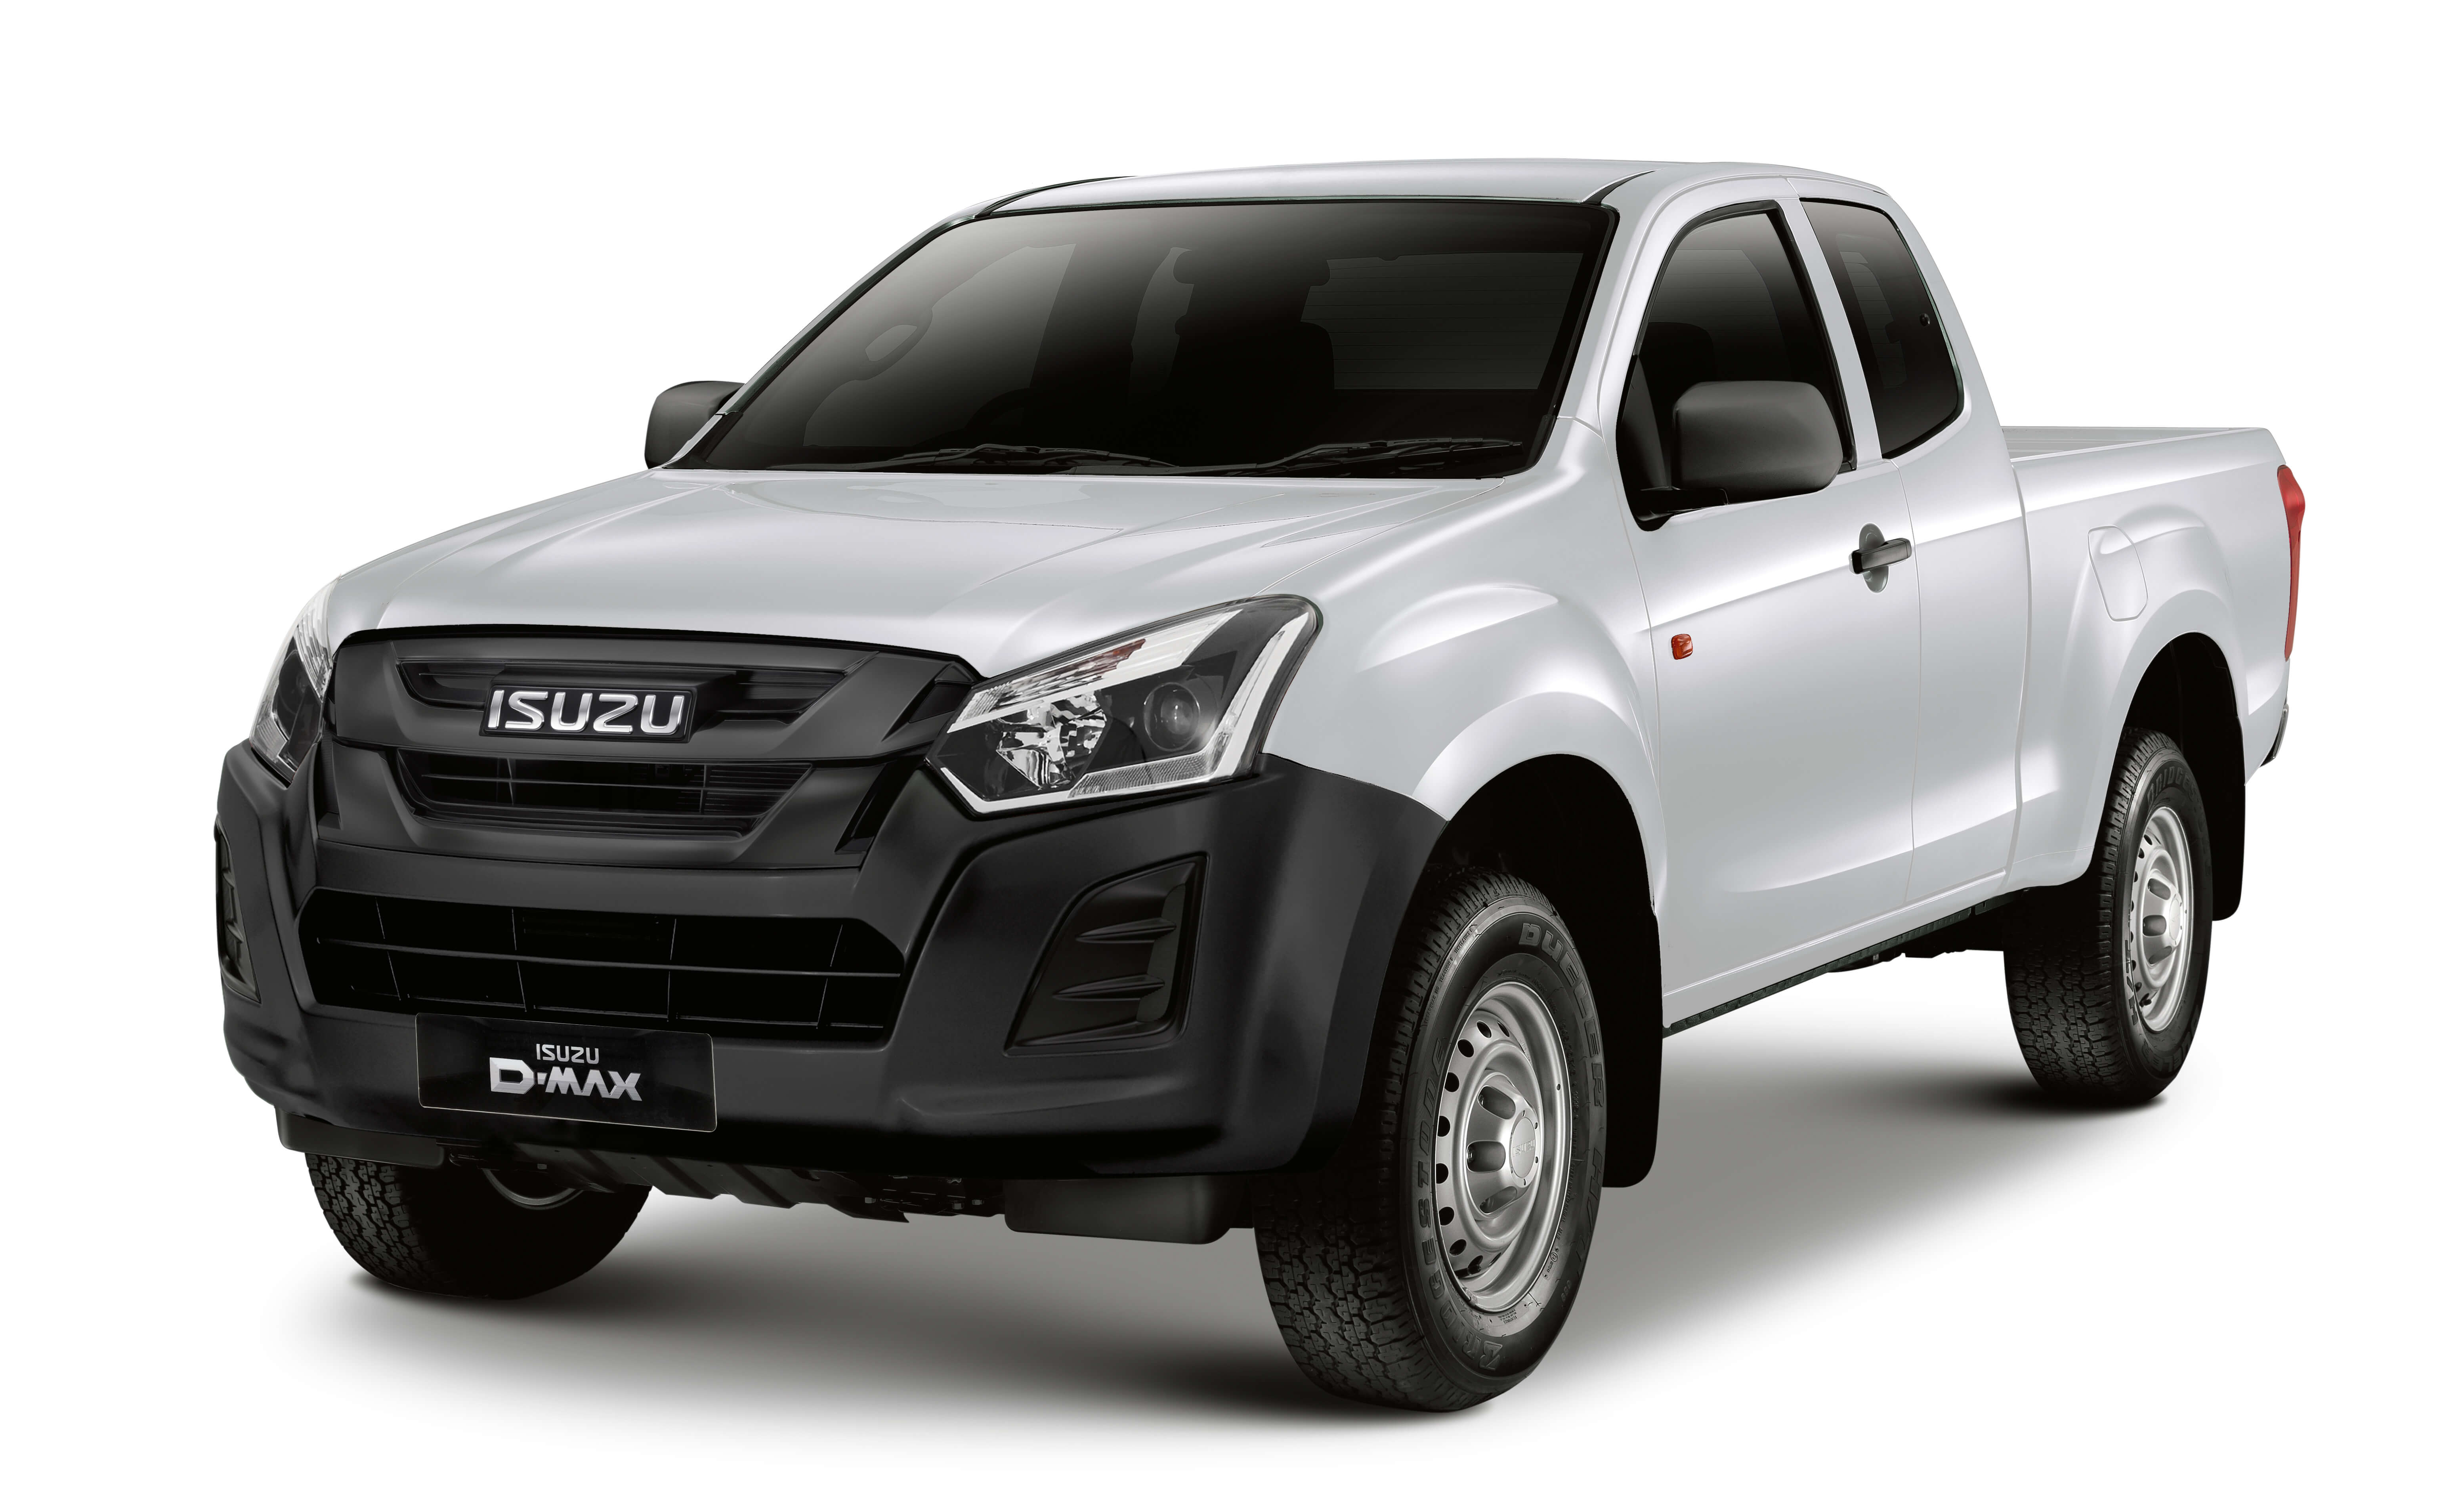 Isuzu D-Max Utility extended cab in white front view